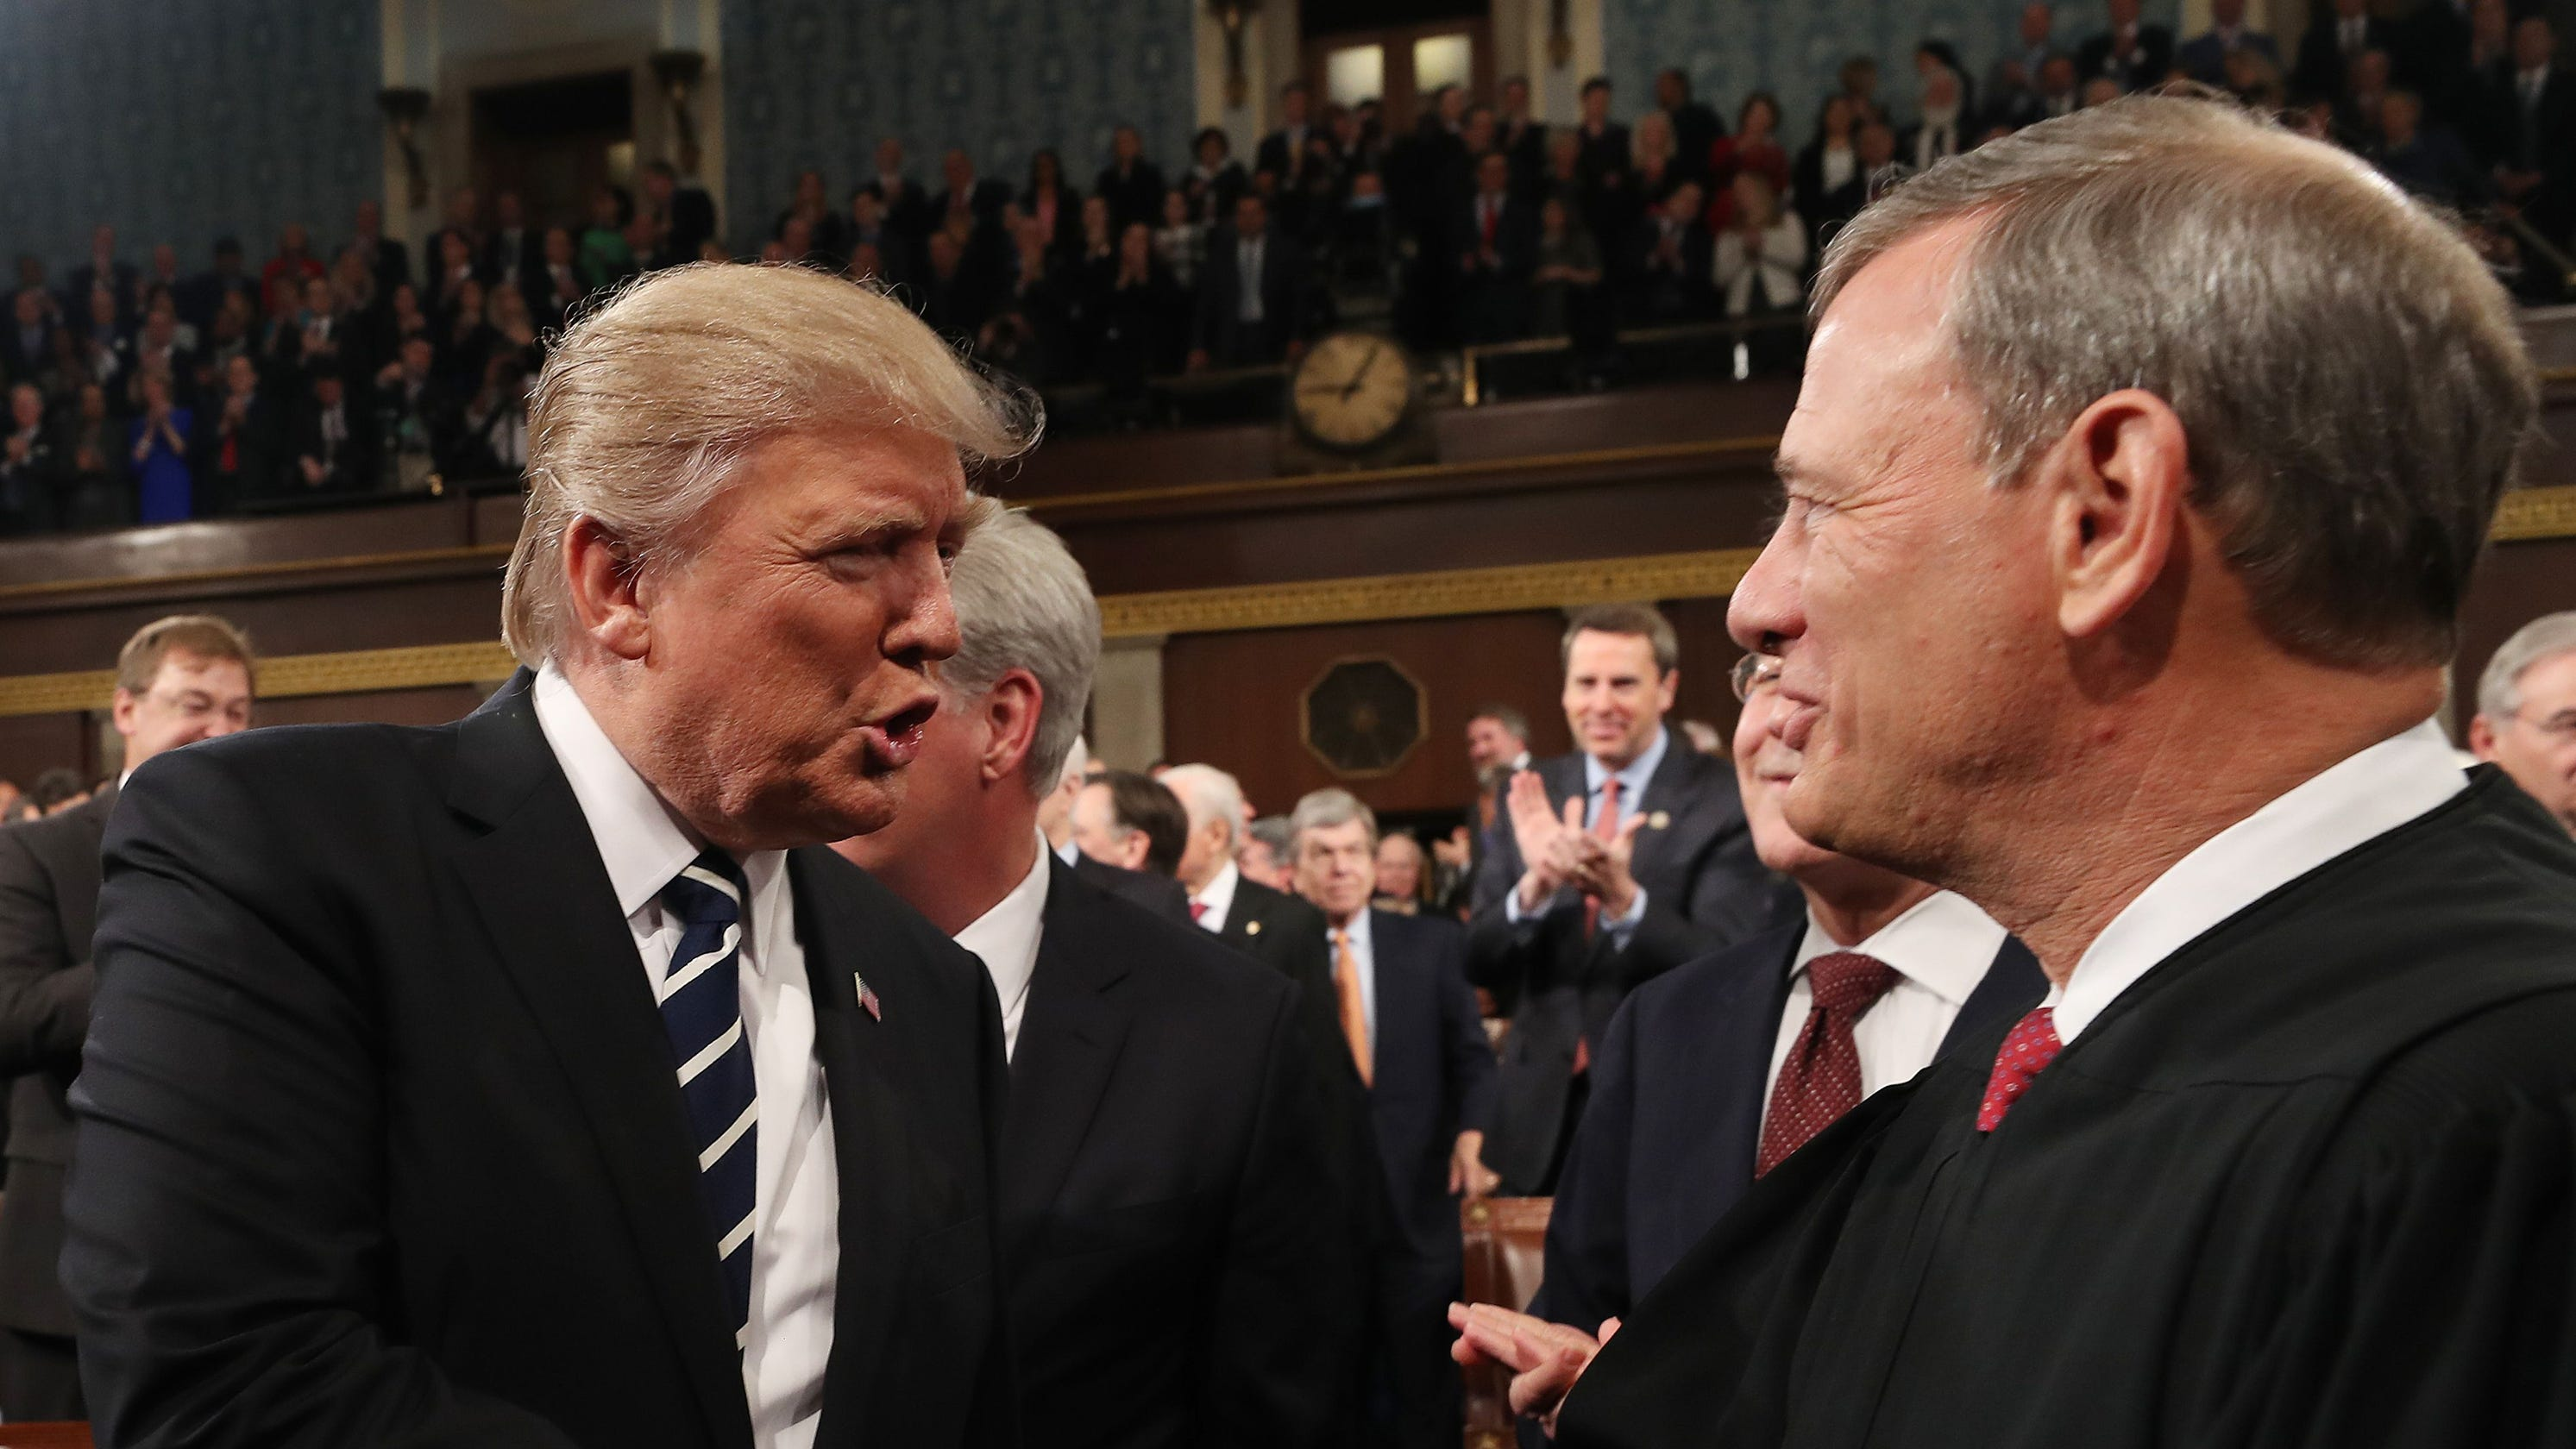 His Supreme Court divided like the country, Chief Justice John Roberts prepares for outsized role as umpire